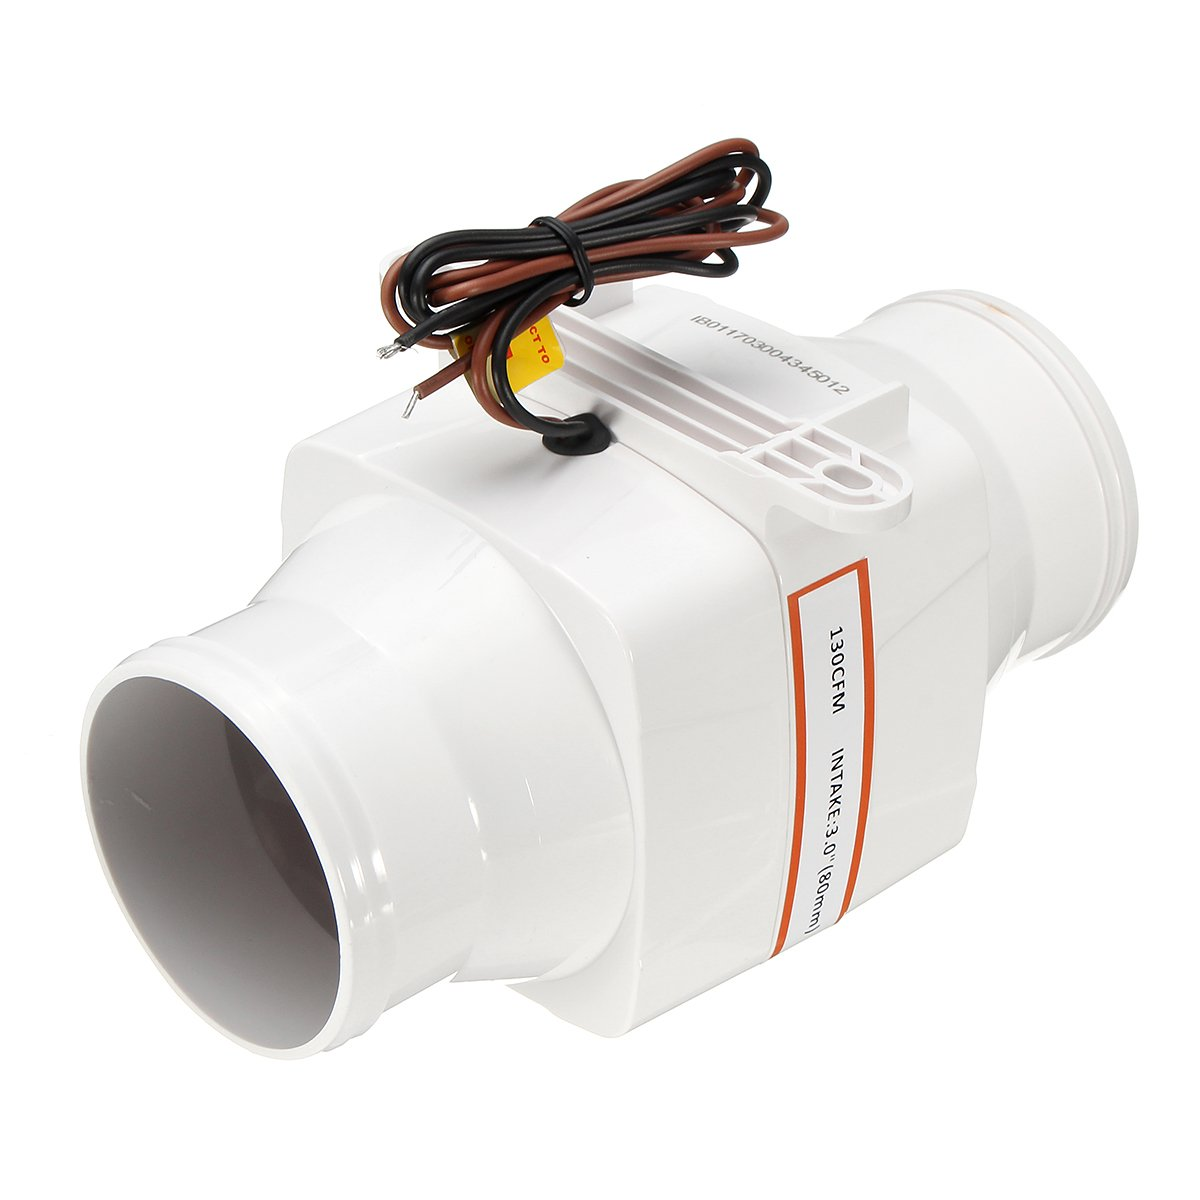 HITSAN INCORPORATION 3 Inch in Line Air Blower Boat Bilge Engine Galley Marine Ventilation Fan 12V 130CFM G1185180